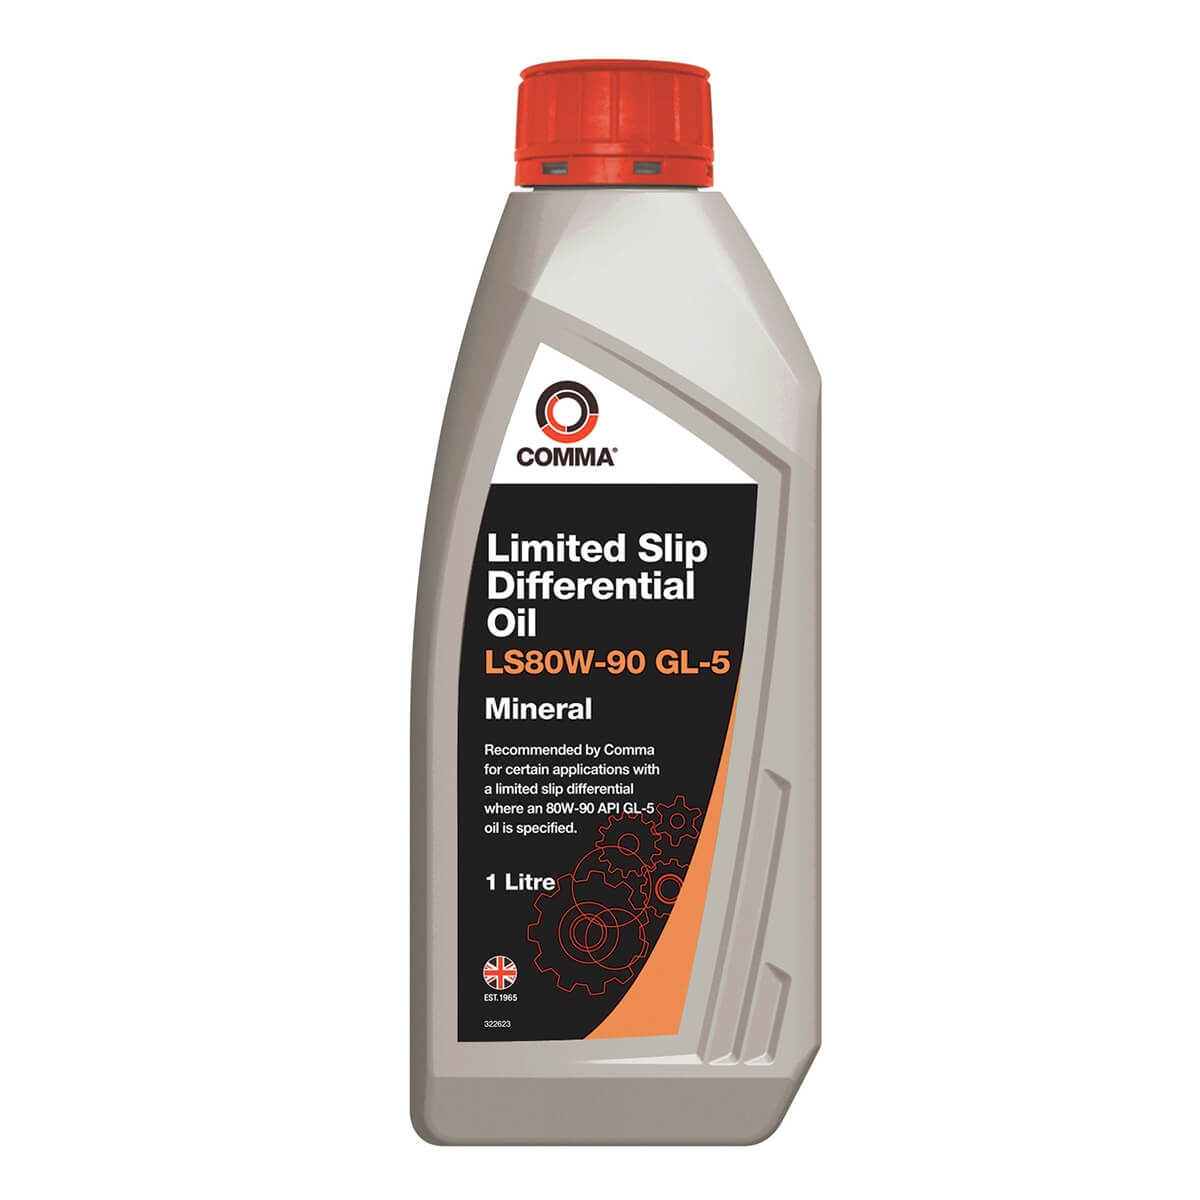 HYUNDAI PONY/EXCEL Diff Gear Oil